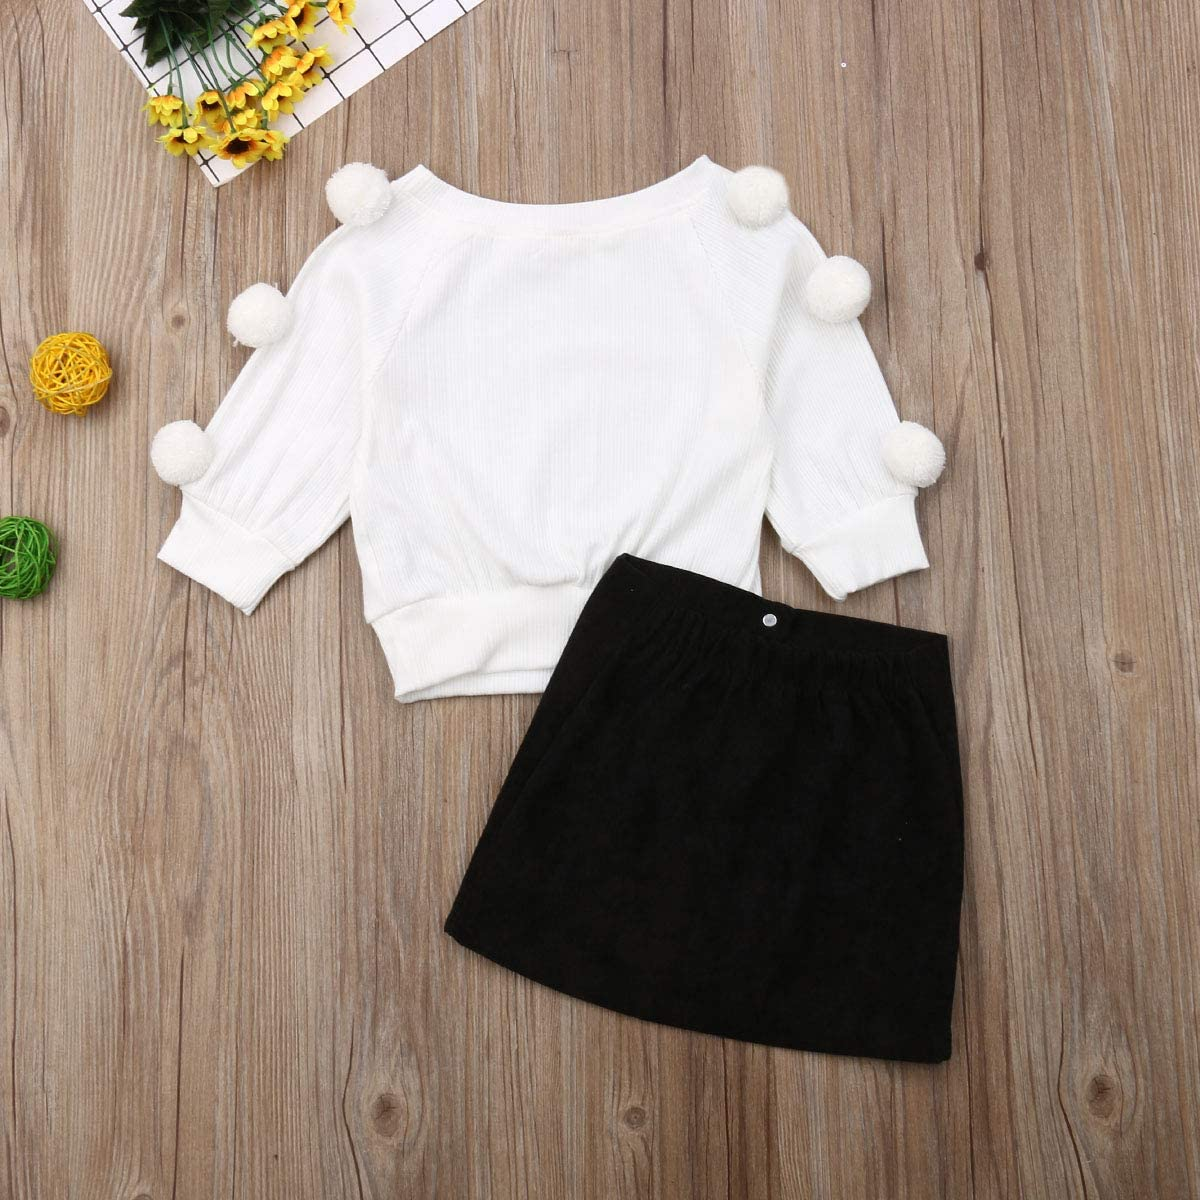 lheaio Toddler Baby Girl Fall Winter Skirt Set White Knitted Sweater Tops+Button Black Short Skirt Outfits Clothes